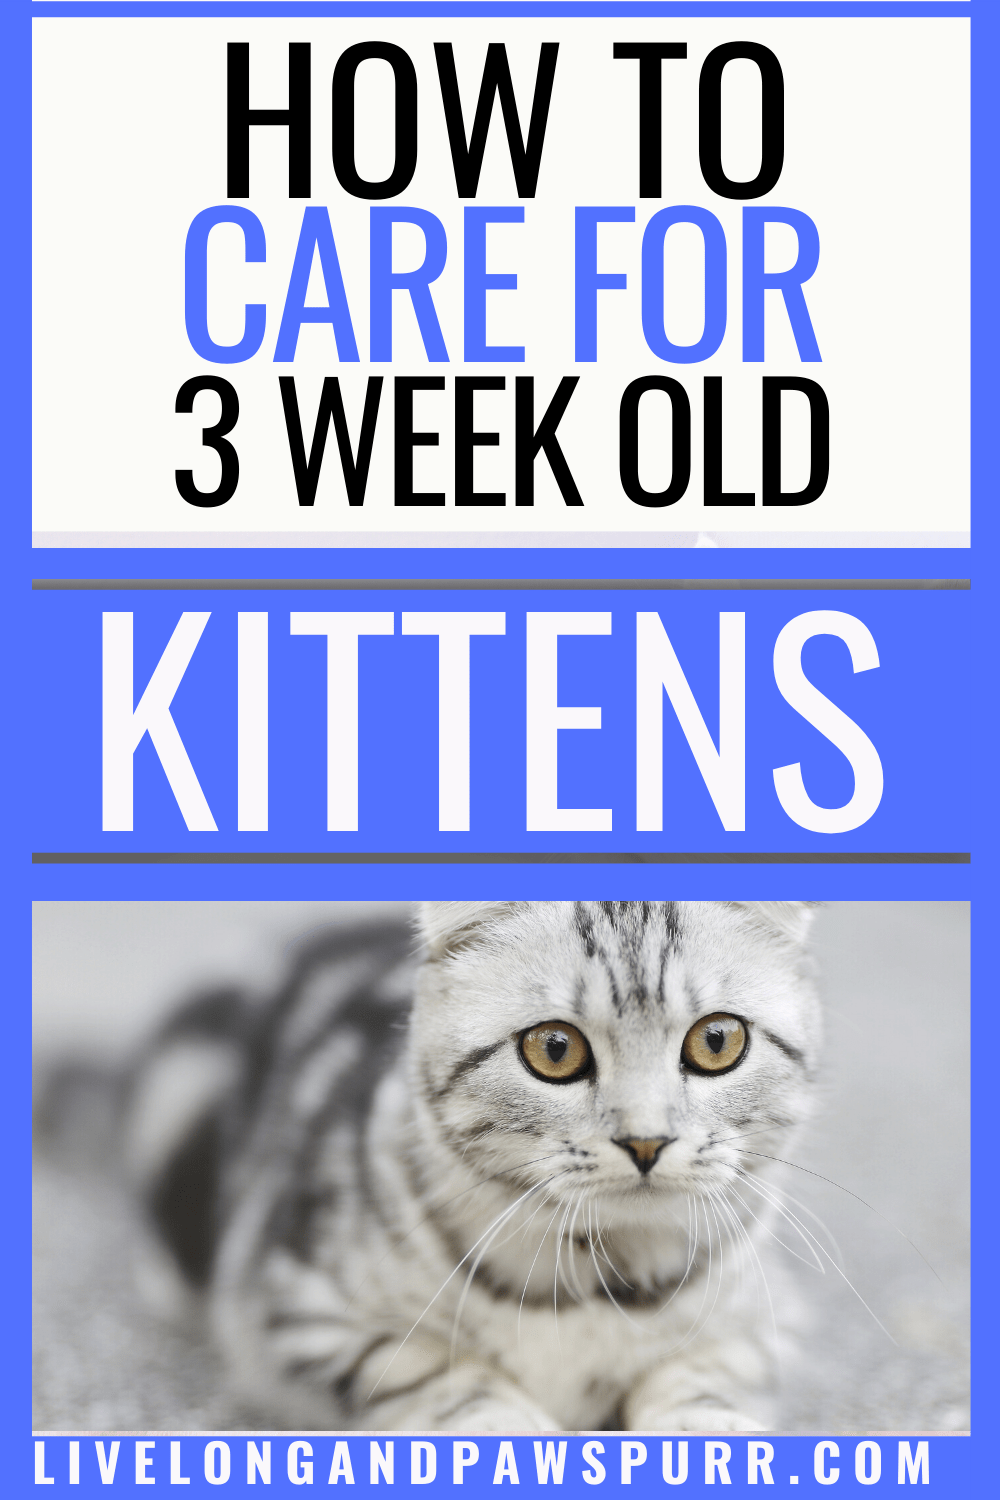 First Lets Talk About How To Tell If A Kitten Is Three Weeks Old Three Week Old Kittens Will Have Their Eyes Open The In 2020 Kitten Care Pet Care Cats